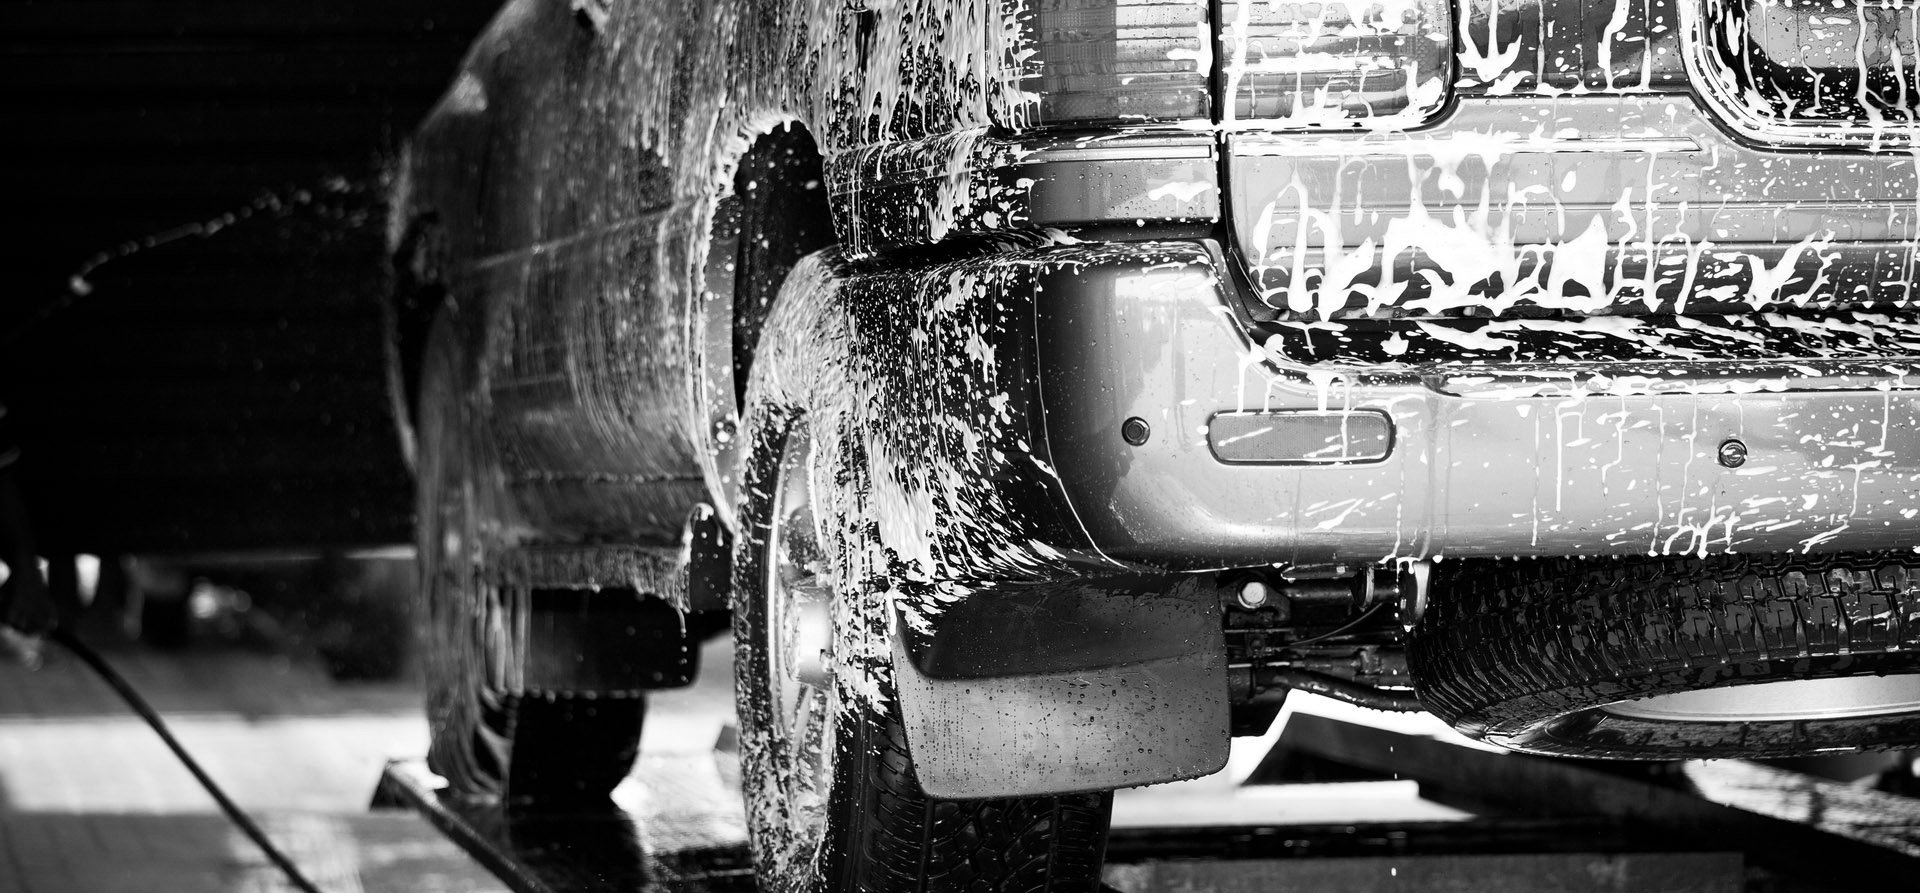 Robbies manufactures car wash chemicals - lubbock, Texas